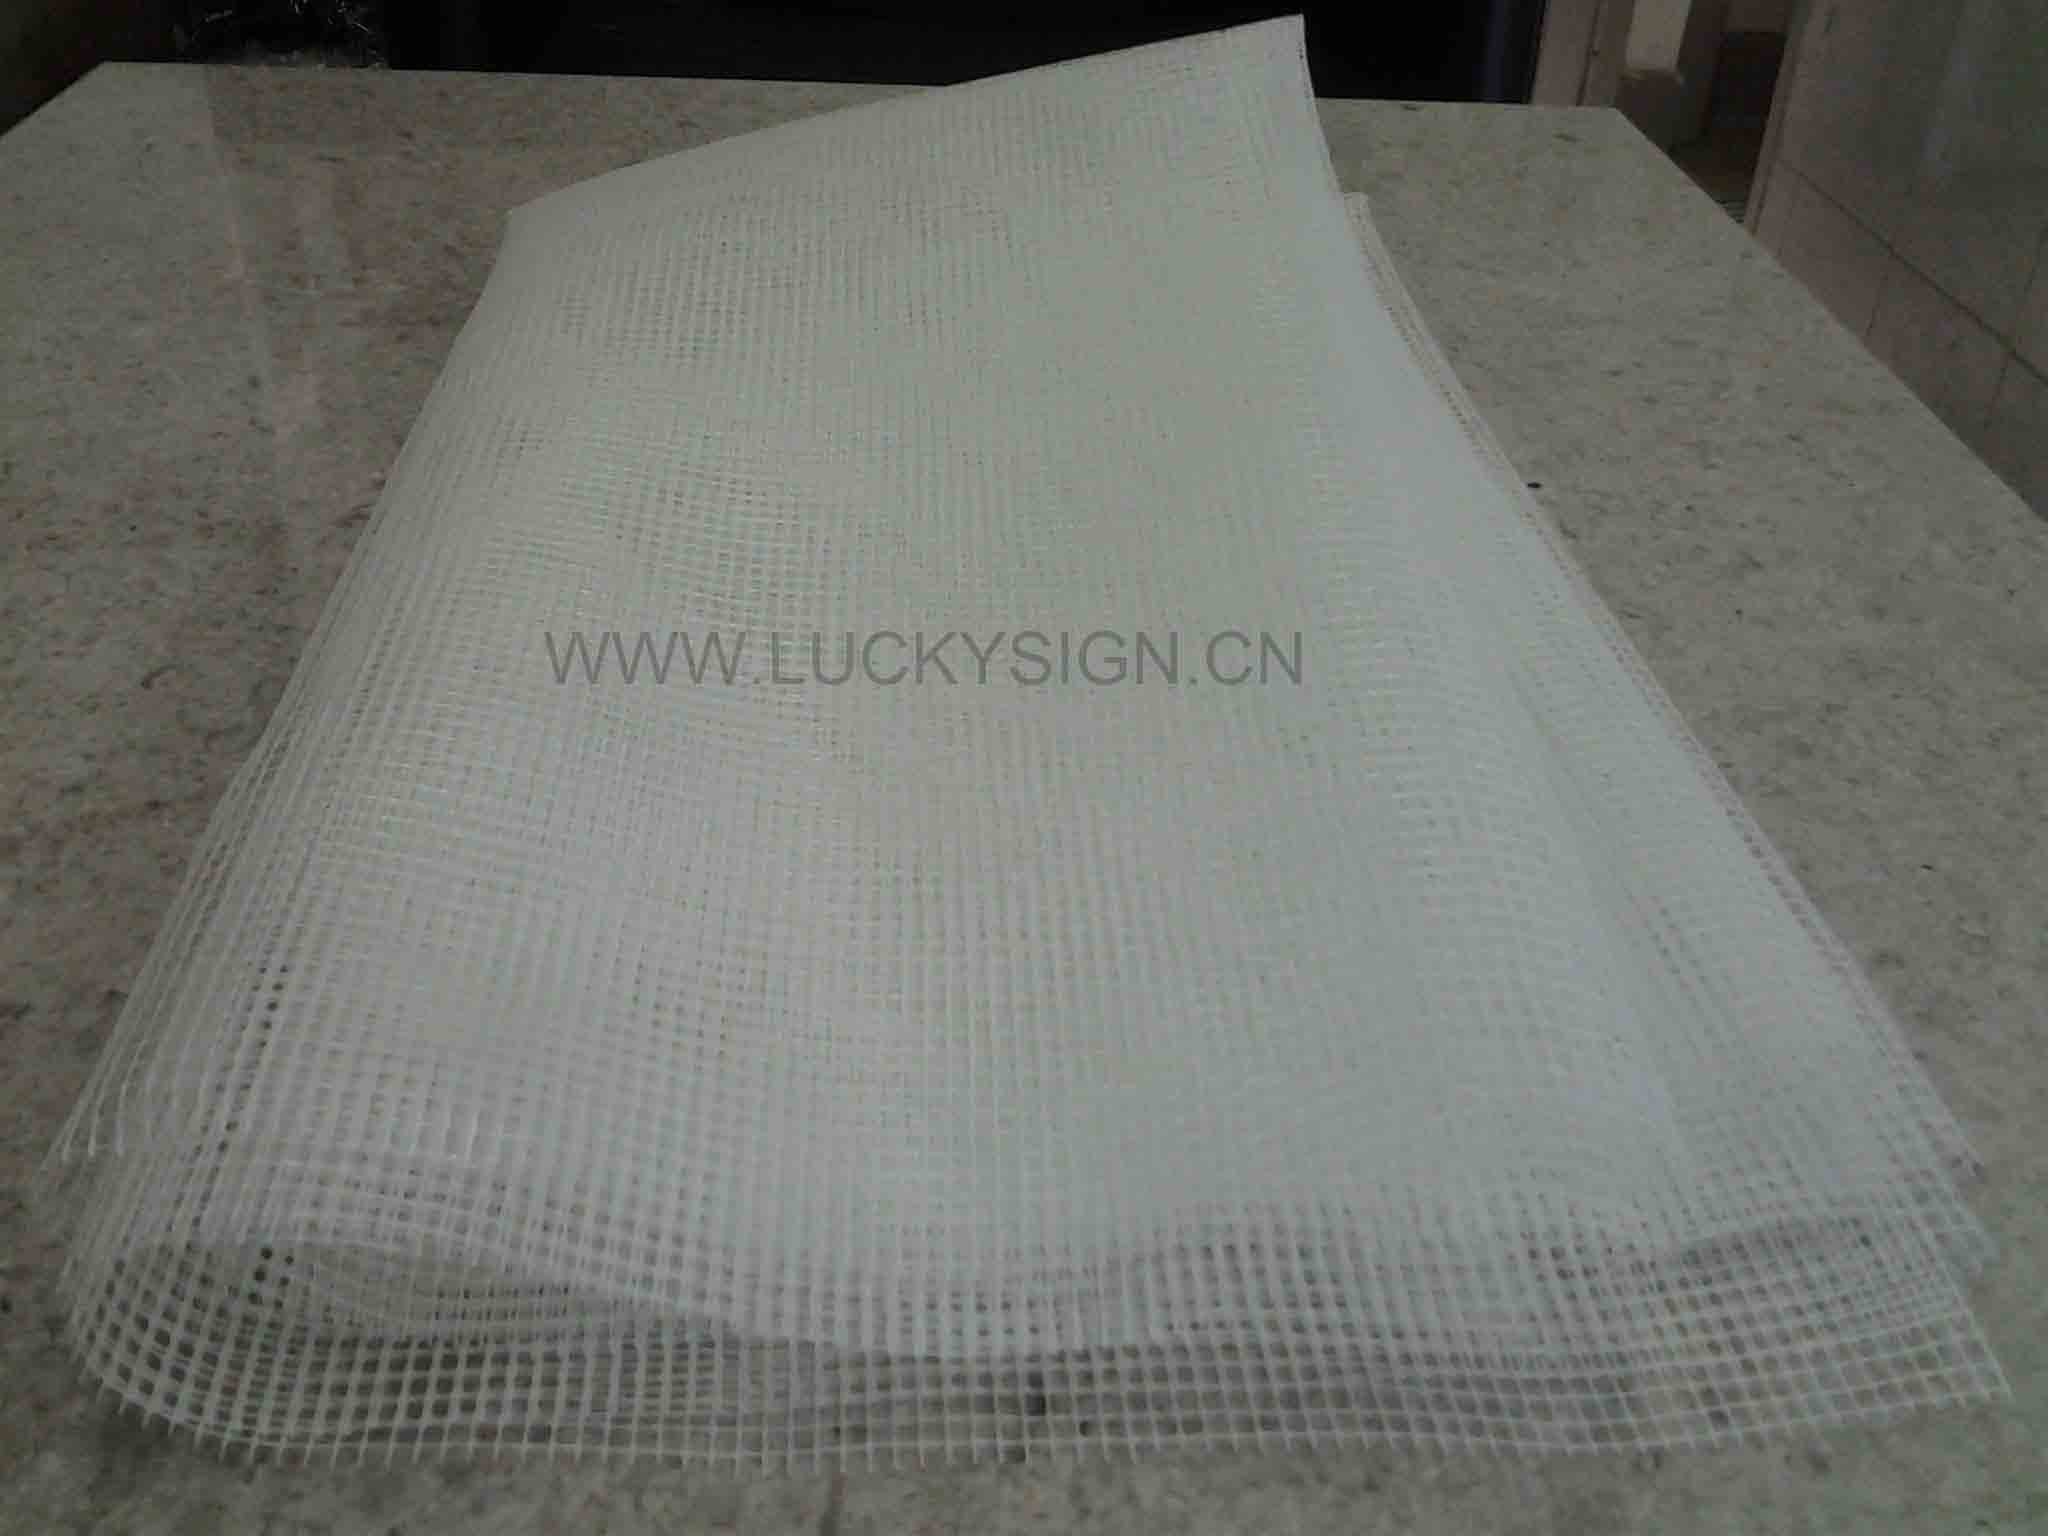 fiberglass net for slabs